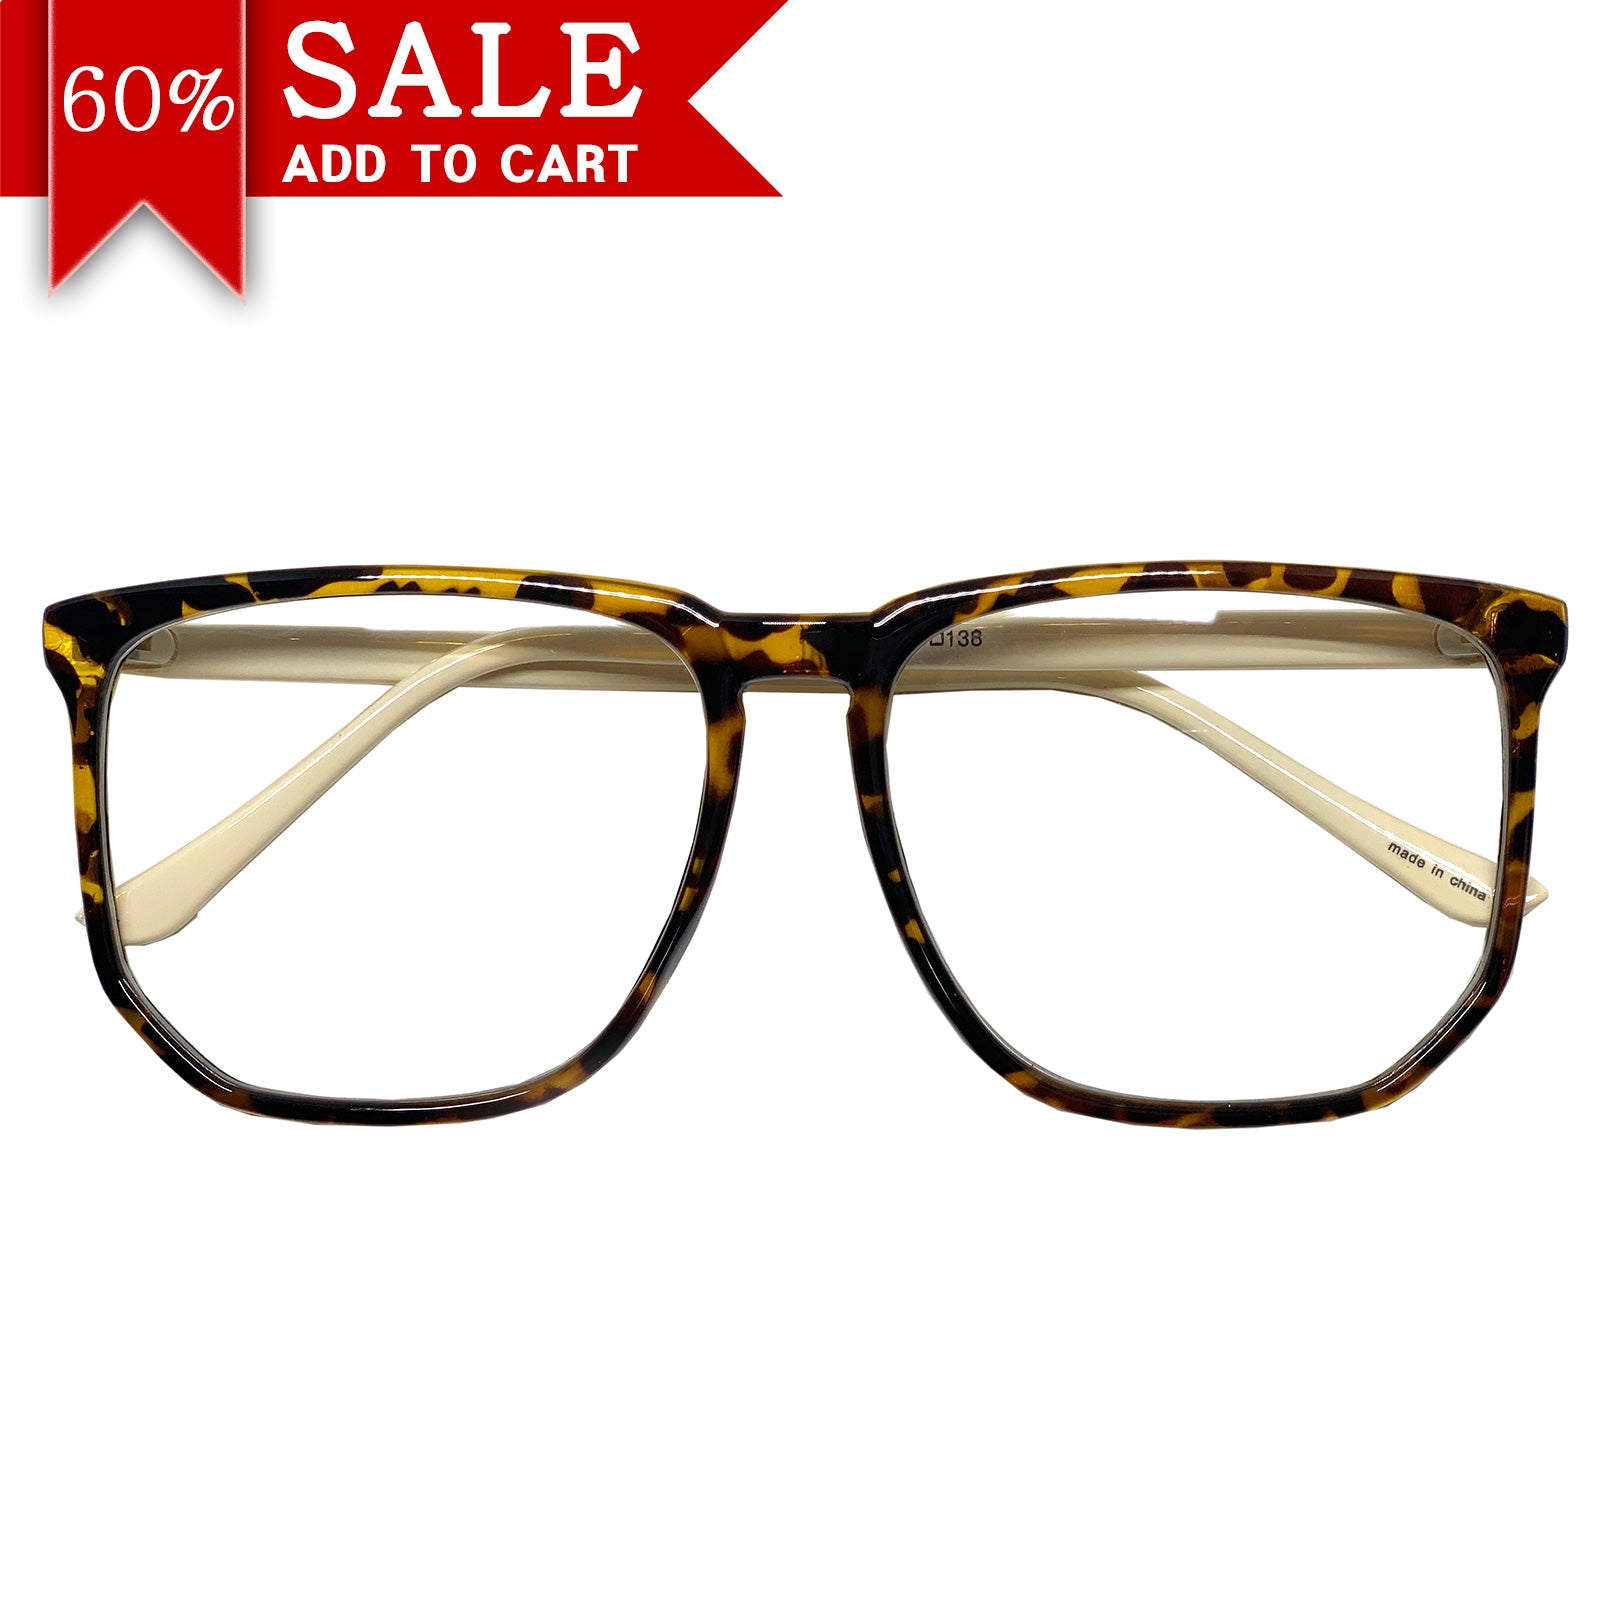 Vintage Inspired Big Horn Rim Frame Retro Nerd Geek Oversize Eyeglasses Framed Clear Lens Spectacles - ENCACC